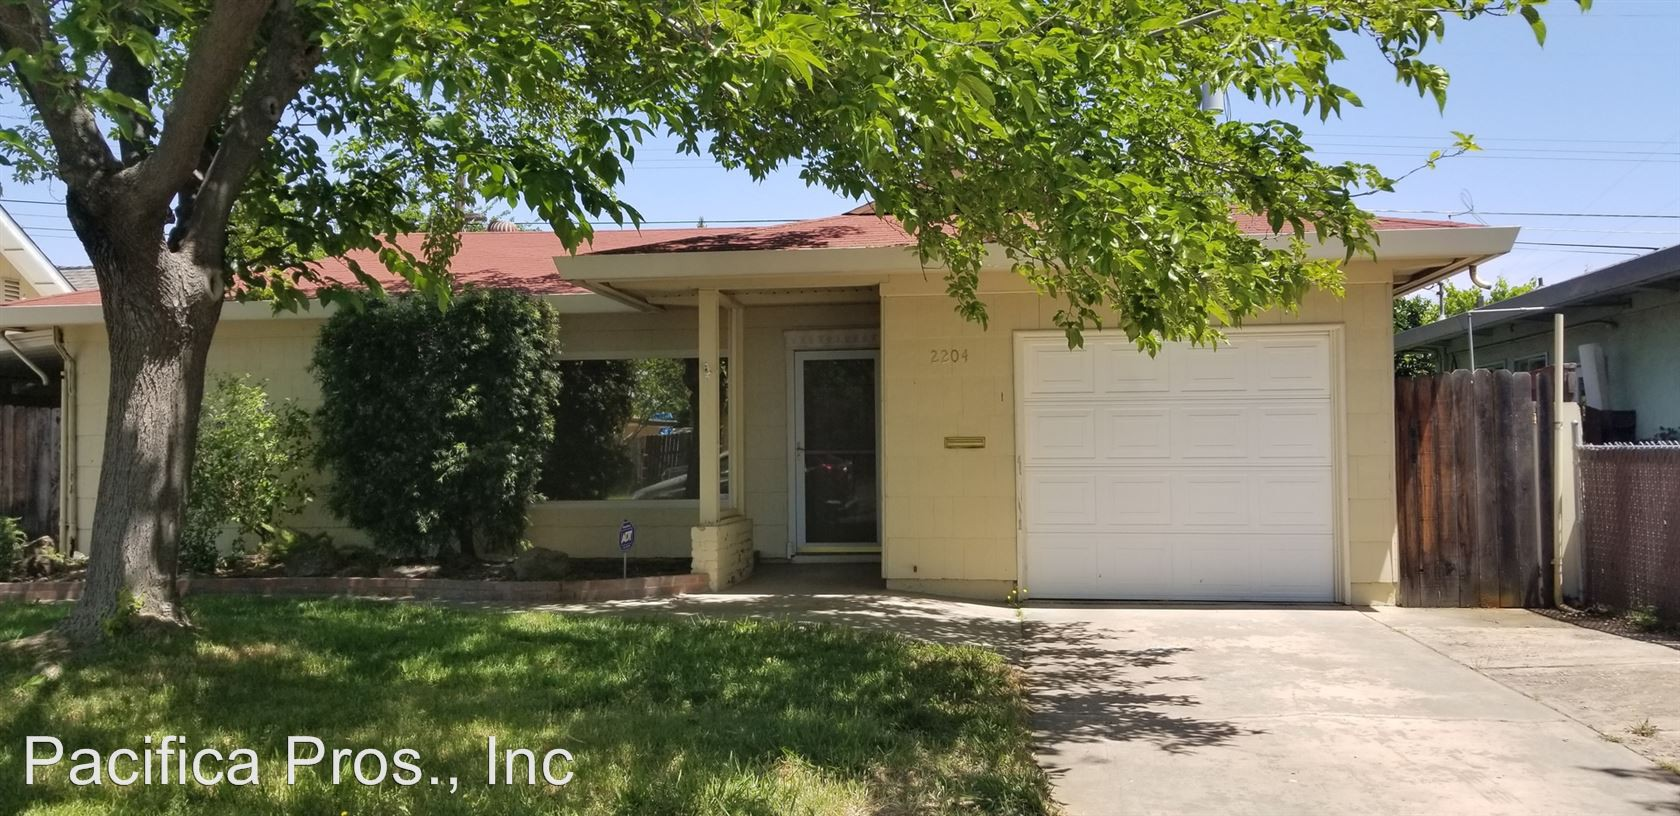 2204 Cortez Ln, Sacramento, CA 95825 2 Bedroom House For Rent For  $1,395/month   Zumper